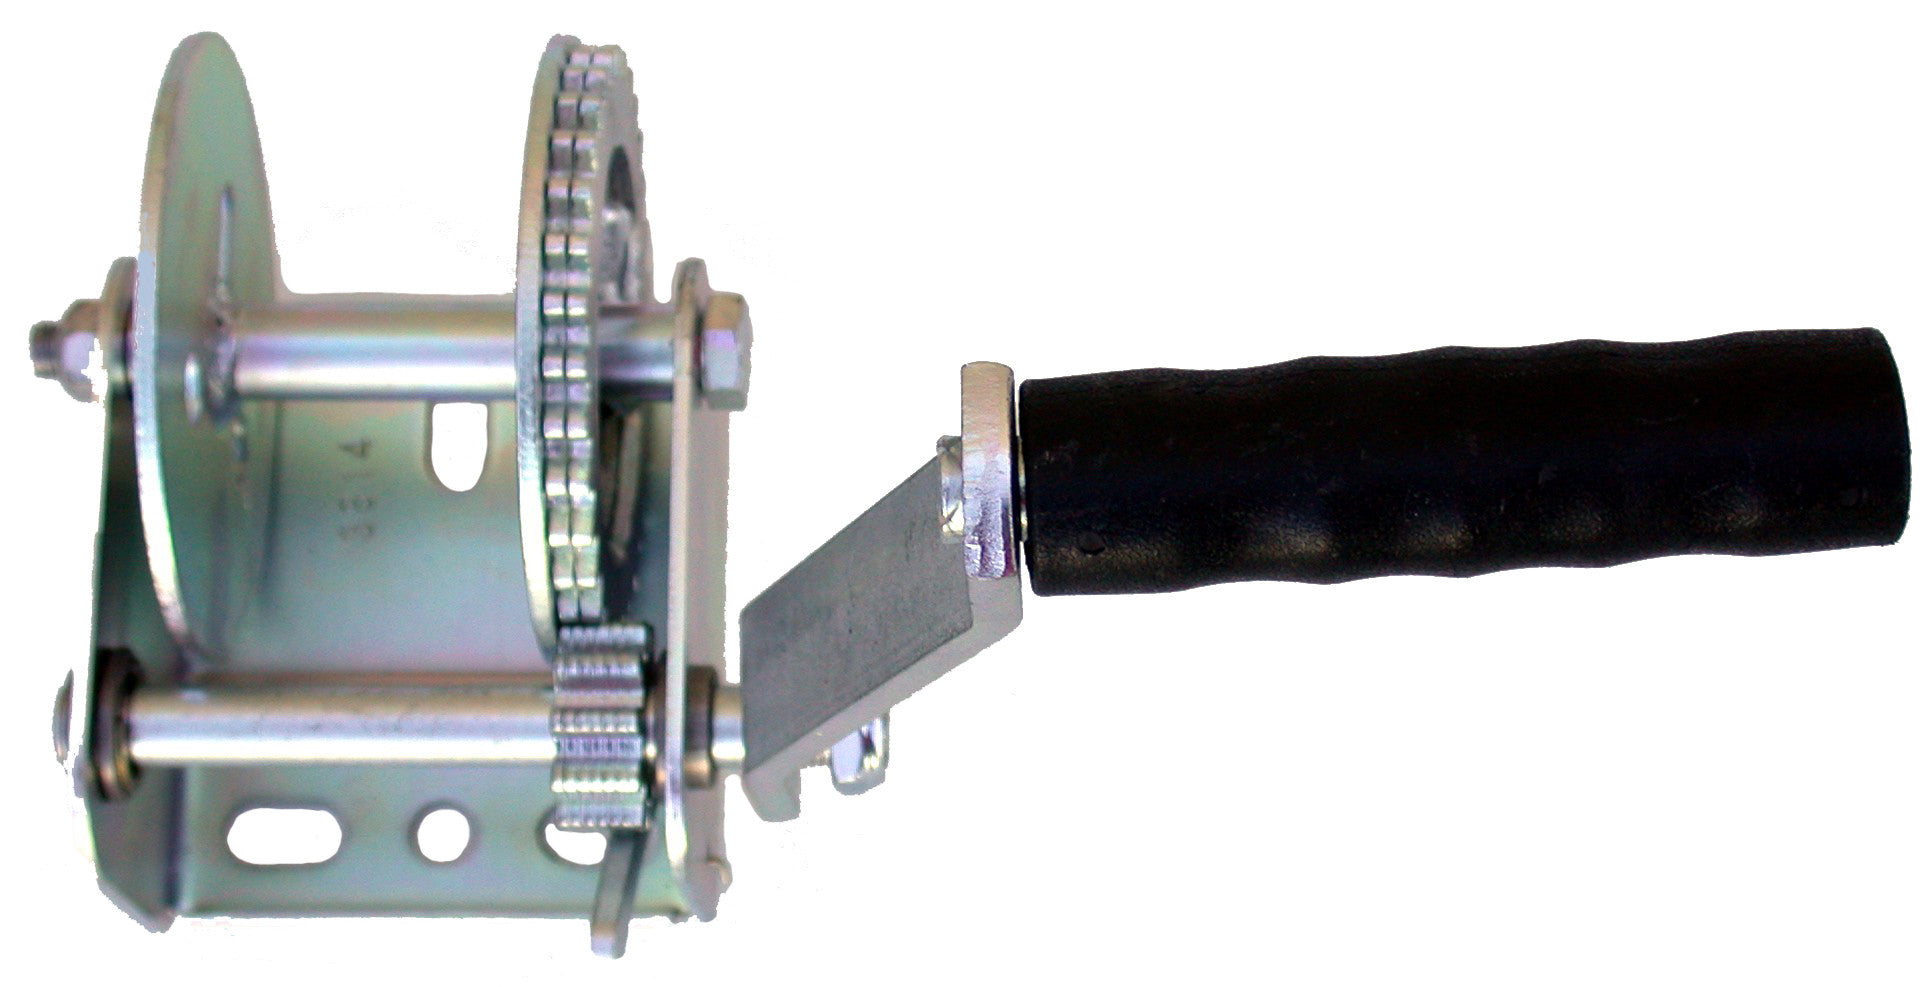 W9-900 lbs zinc plated steel ratchet winch